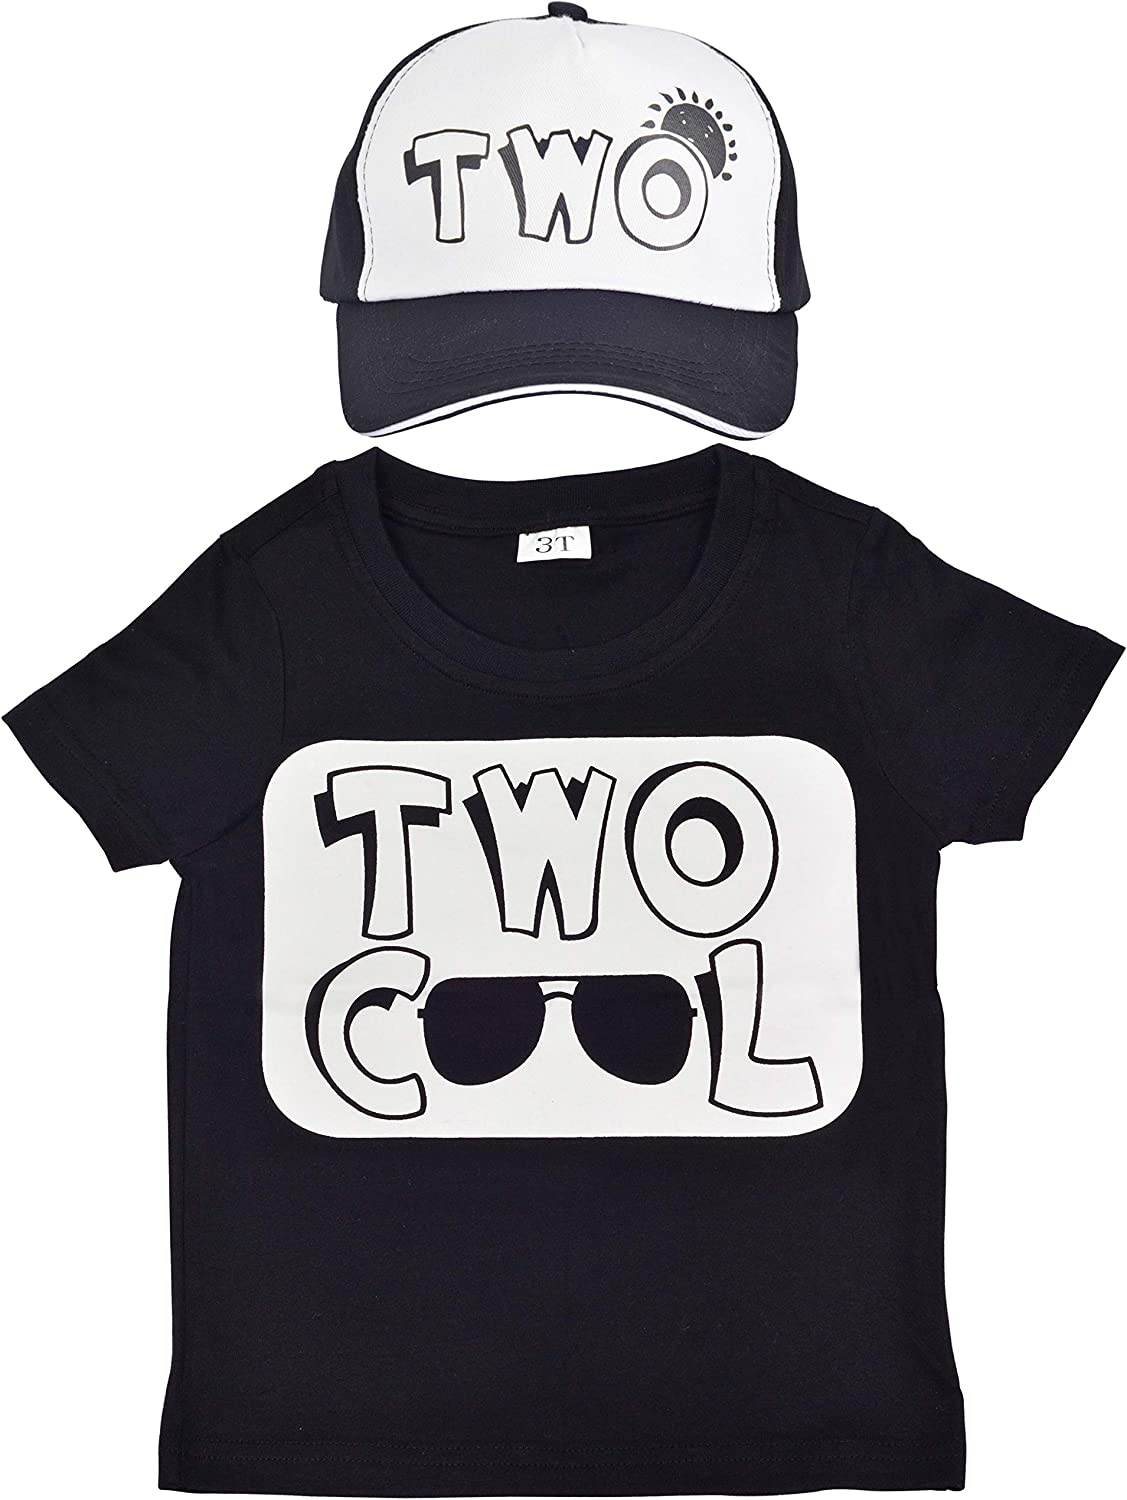 2nd Birthday T Shirt and Hat, Two Cool Birthday Shirt, Trucker Hat for Kids with Two Cool, 2nd Birthday Two Cool Shirt Boy, 2 Year Old Birthday Shirt Boy, Happy Birthday Shirt for 2 Year Old Boy,